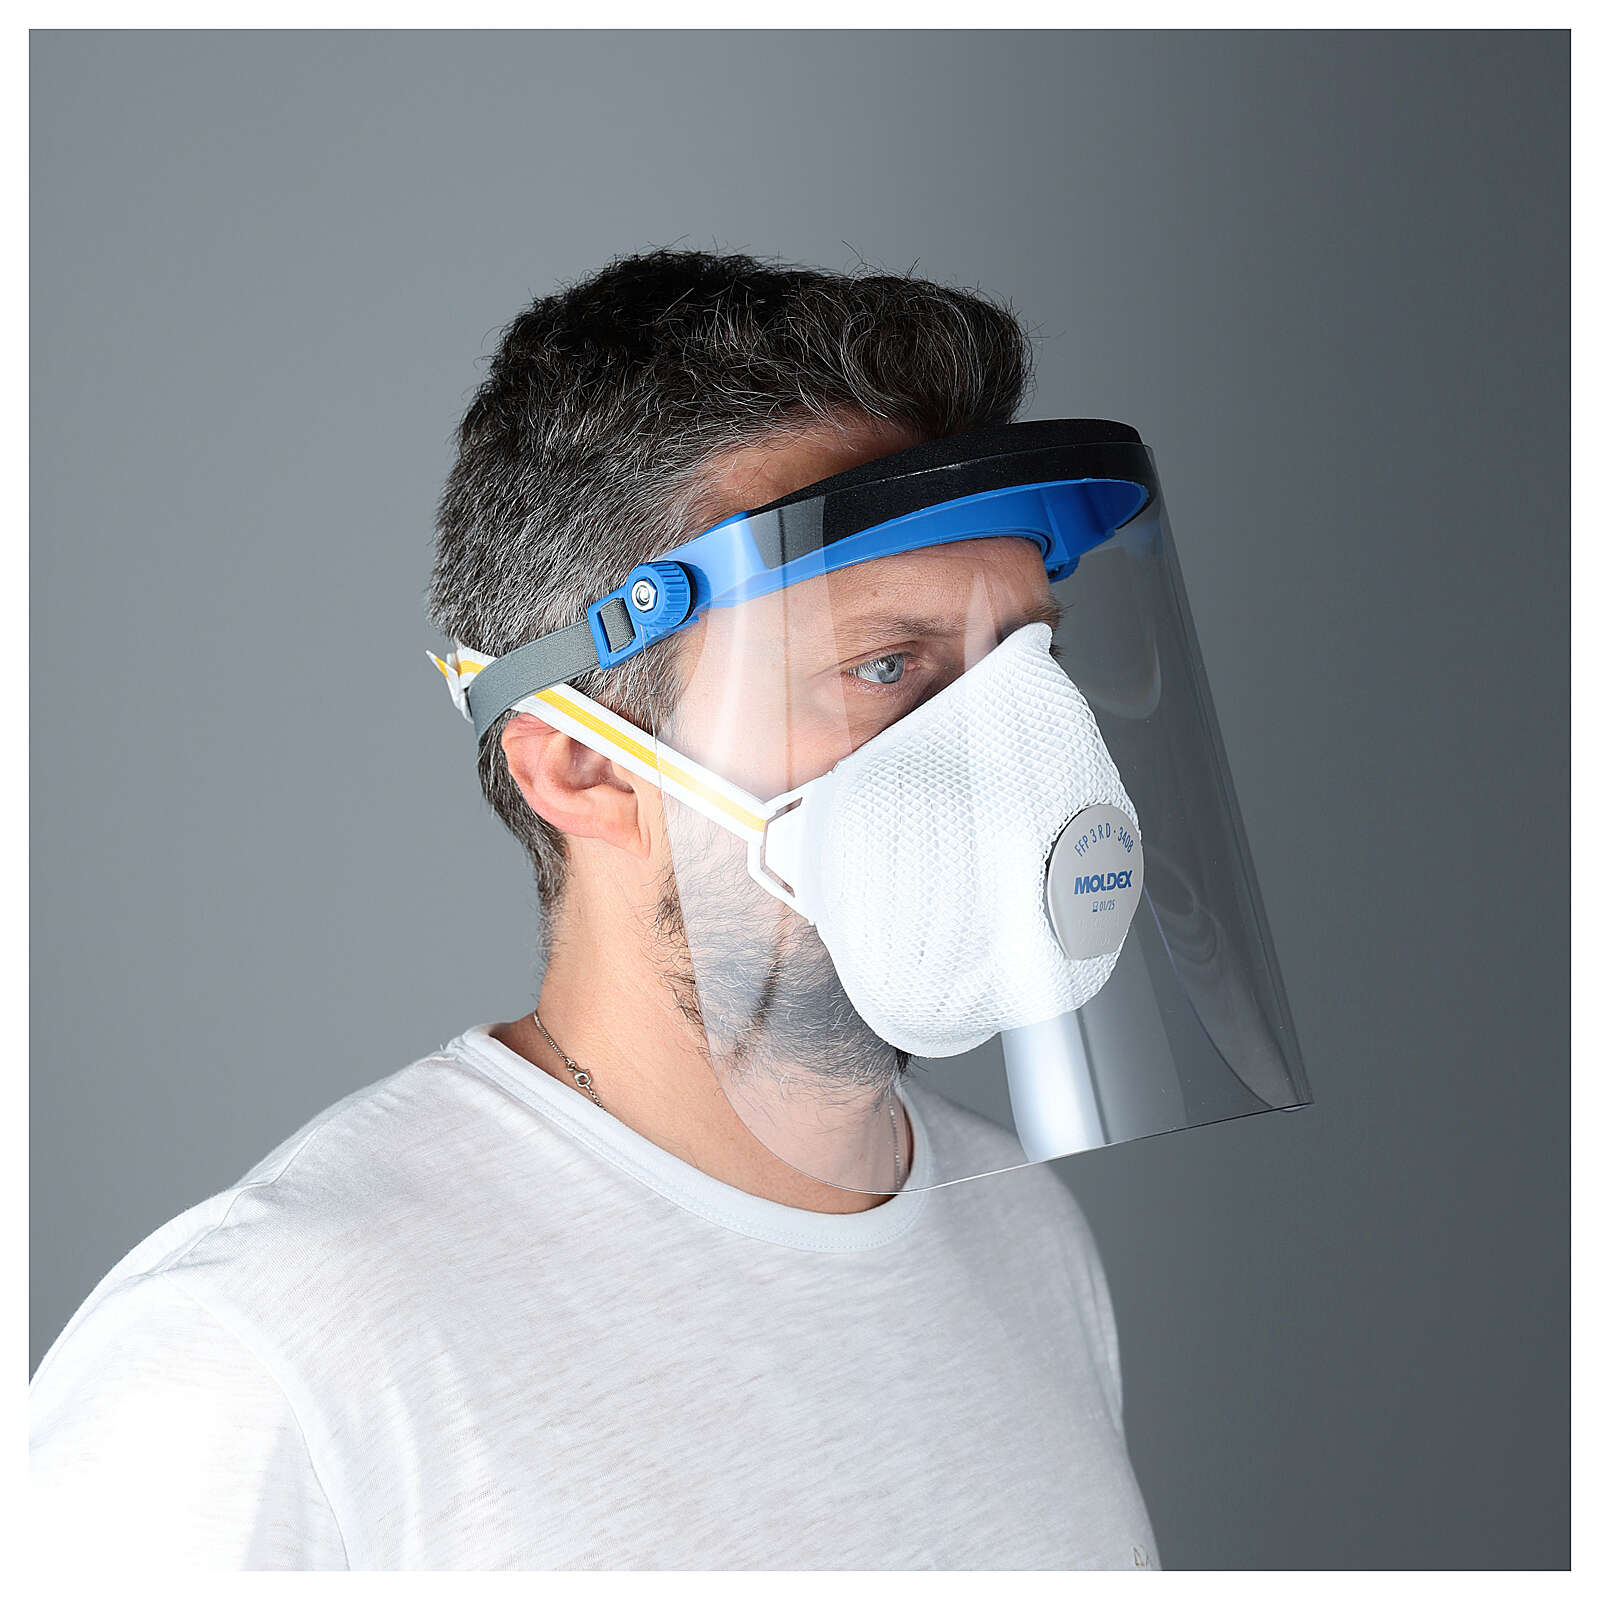 Protective plastic visor against contagion 3